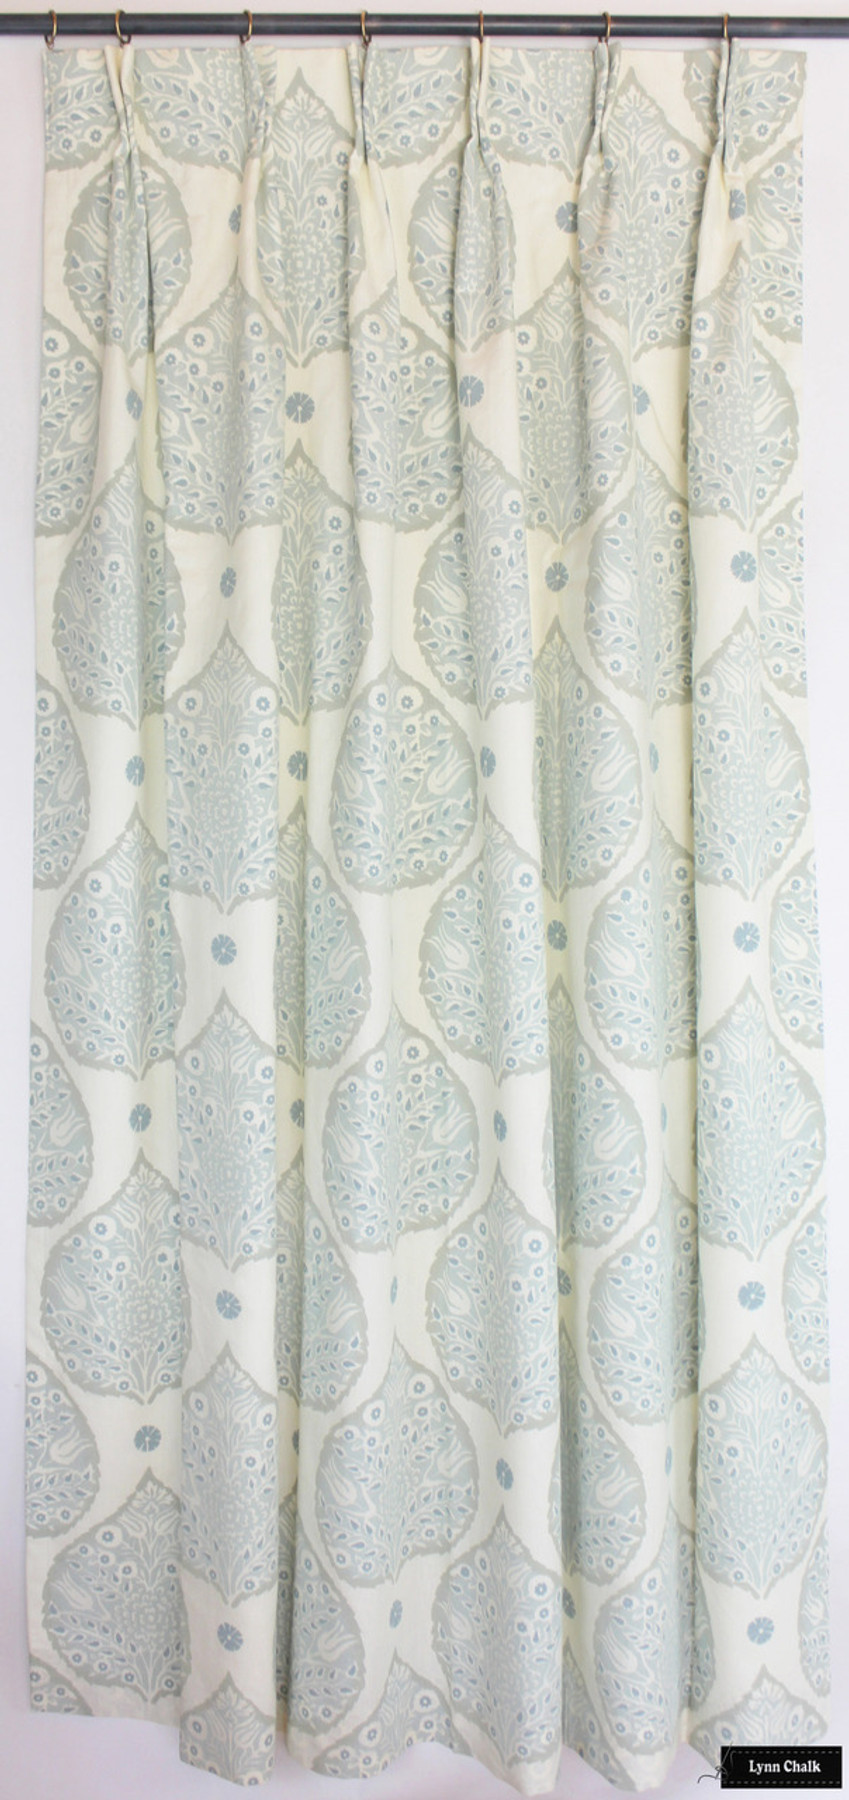 Galbraith & Paul Lotus Wallpaper-  Wallpaper Sold By The Yard - 5 Yard Minimum Order